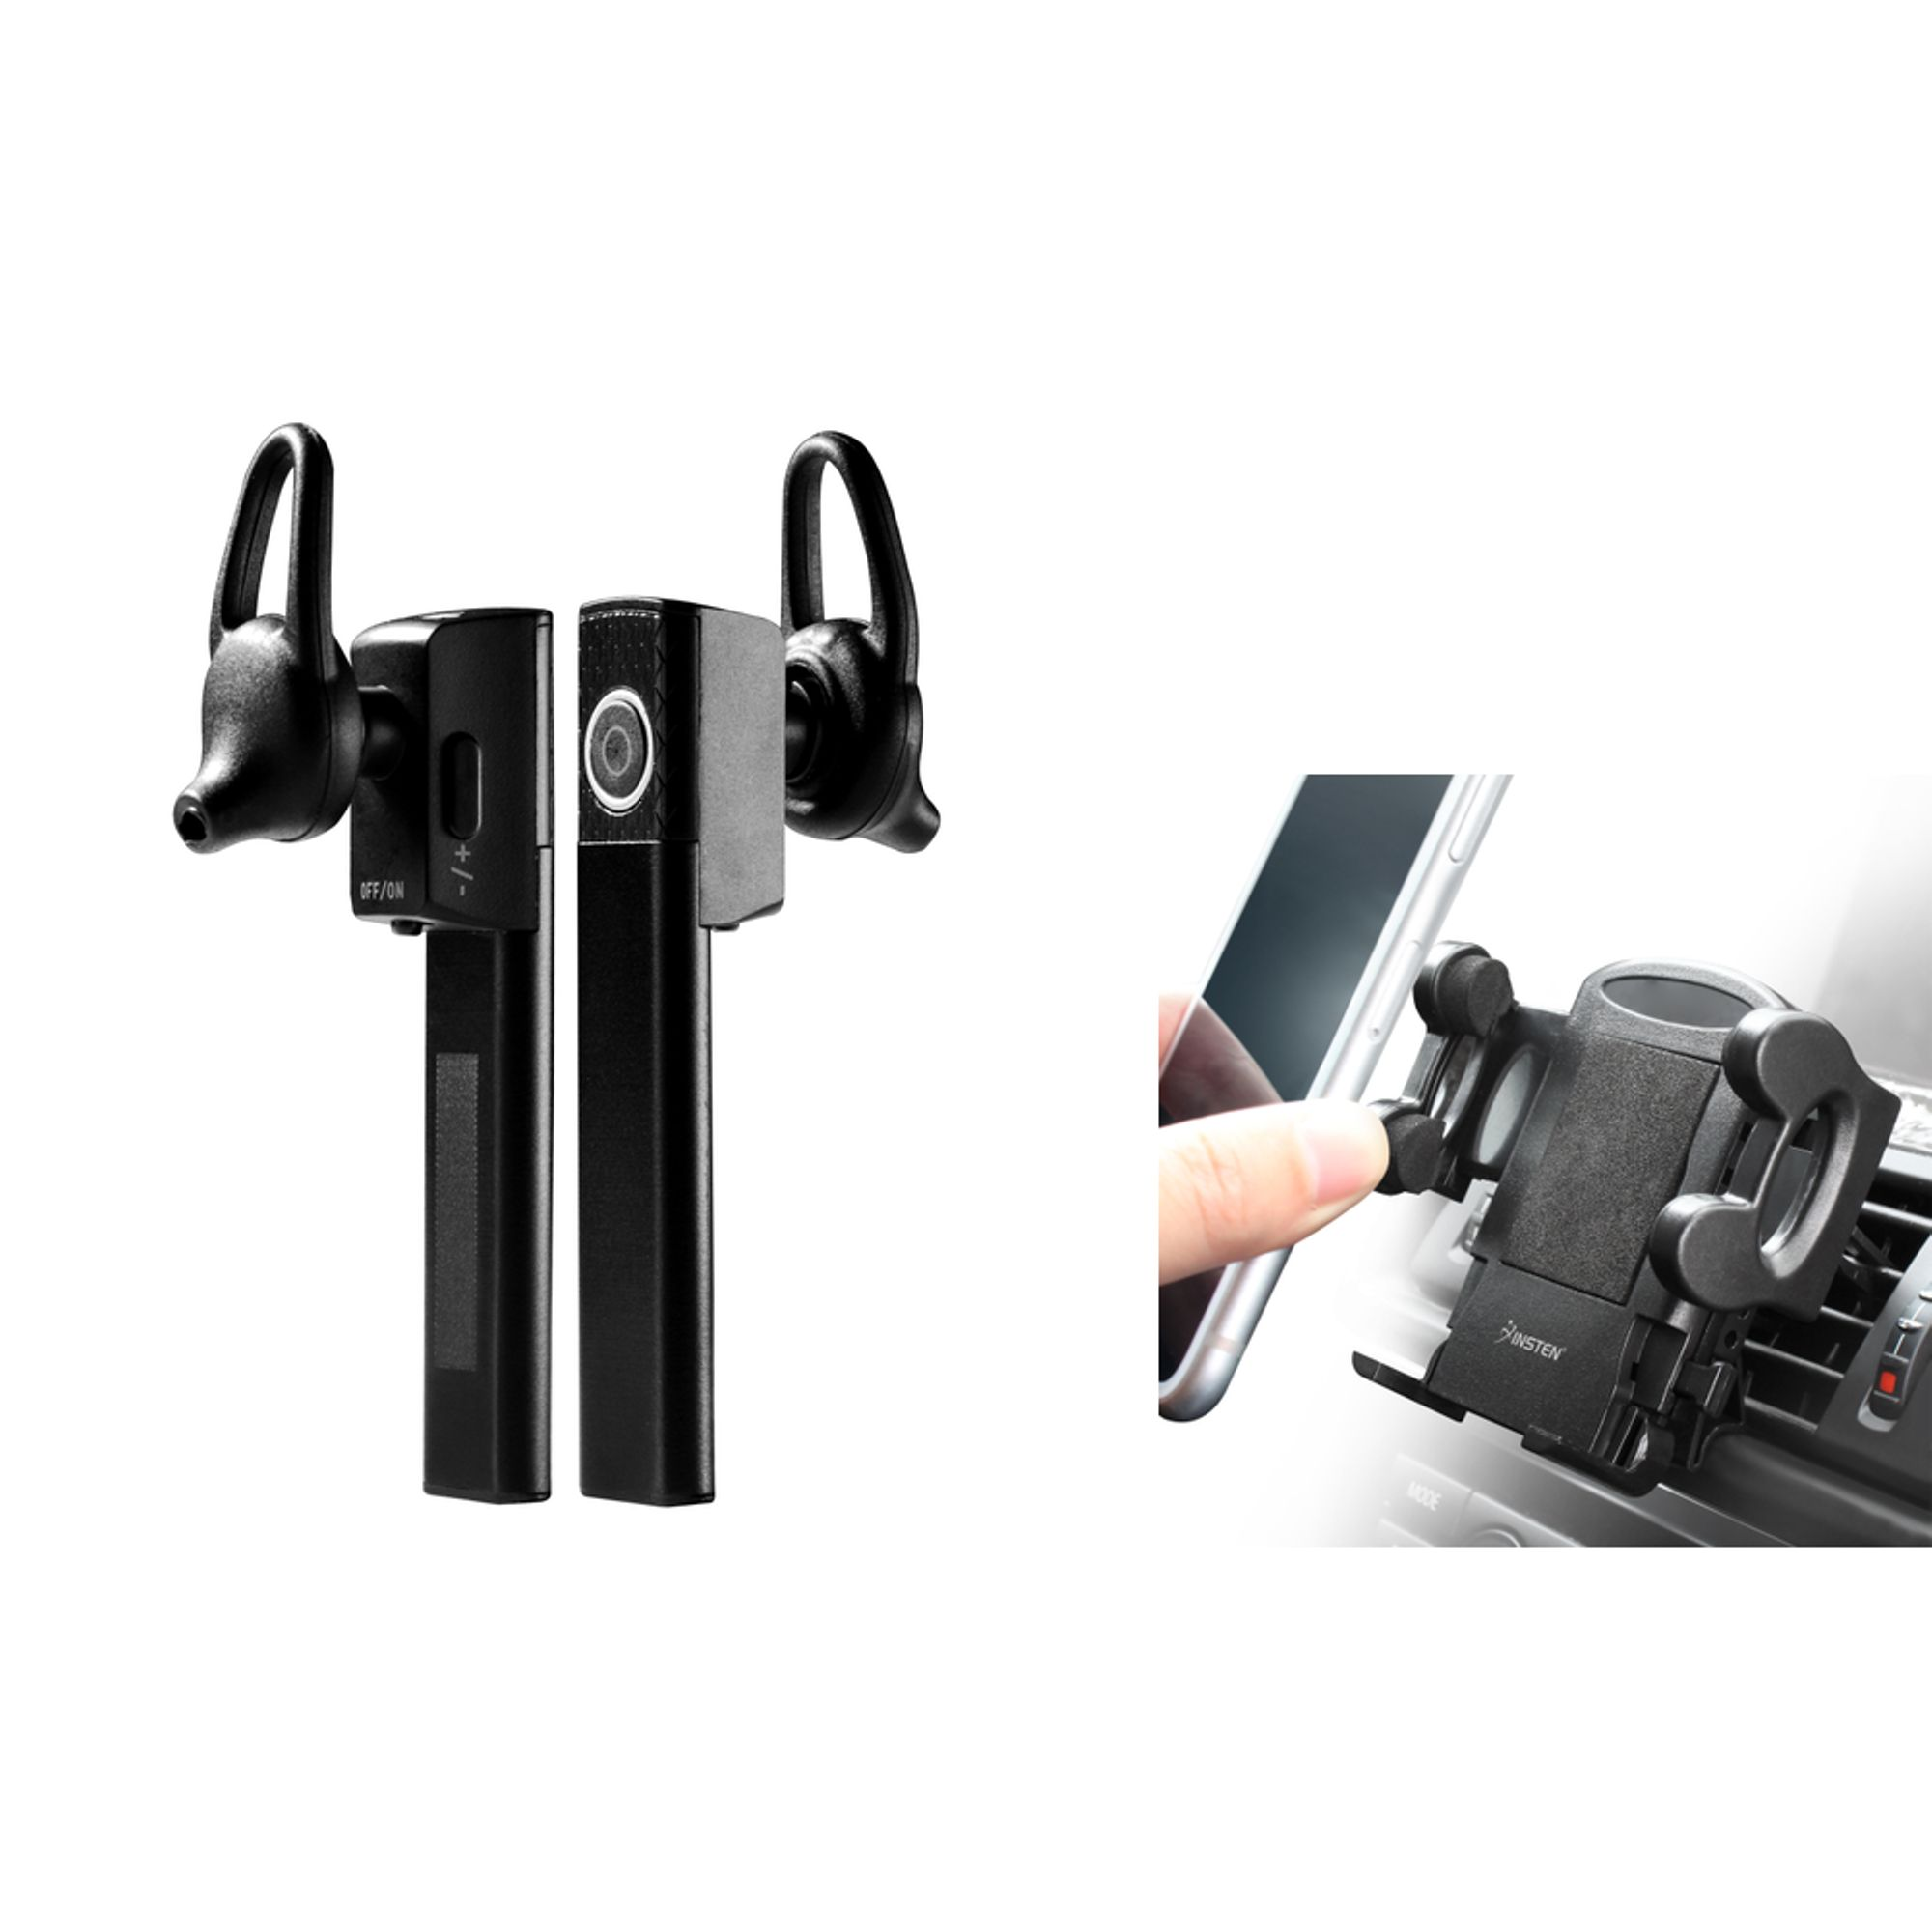 Bluetooth Cell Phone Headset by Insten Mini Bluetooth Headphone Hands Free with Mic + Air Vent Phone Holder Mount For Phone iPhone XS X 8 7 6 6s SE Samsung S9 S9+ Plus J7 Sky Pro Luna Pro Zte Majesty